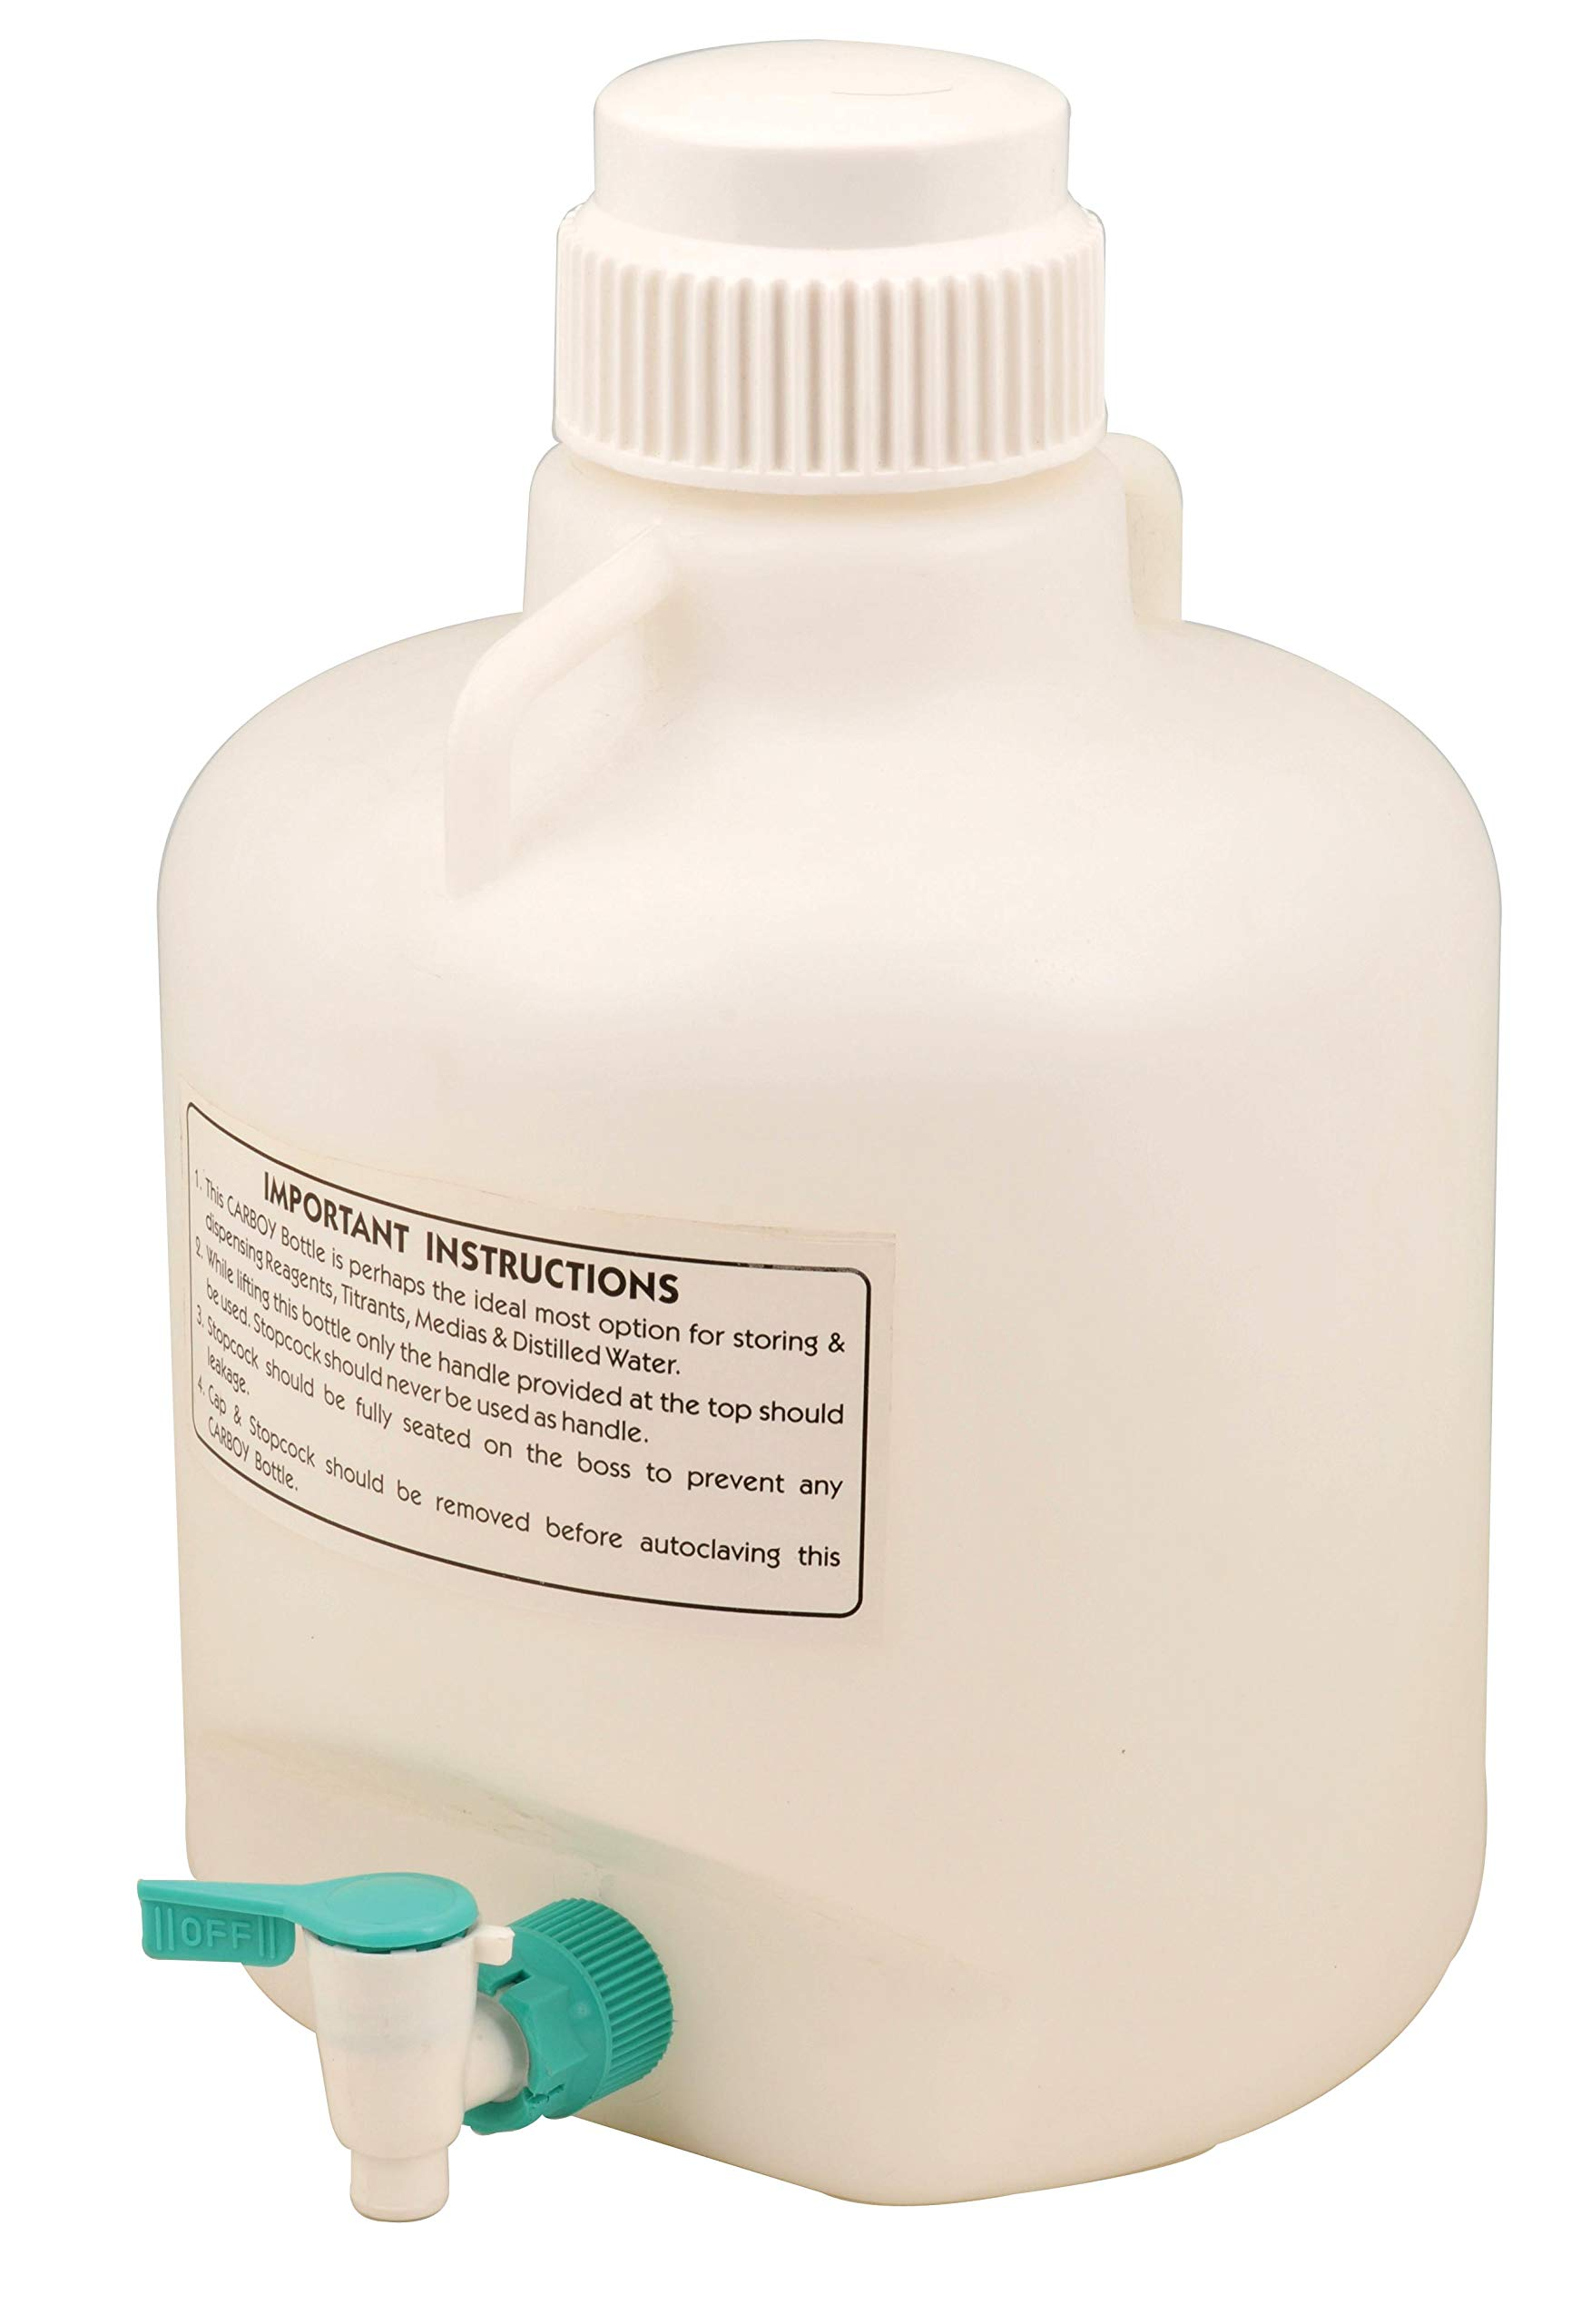 Carboy Bottle with Stopcock, 20 Liter Capacity, White Premium Polypropylene with 2 Handles - Eisco Labs